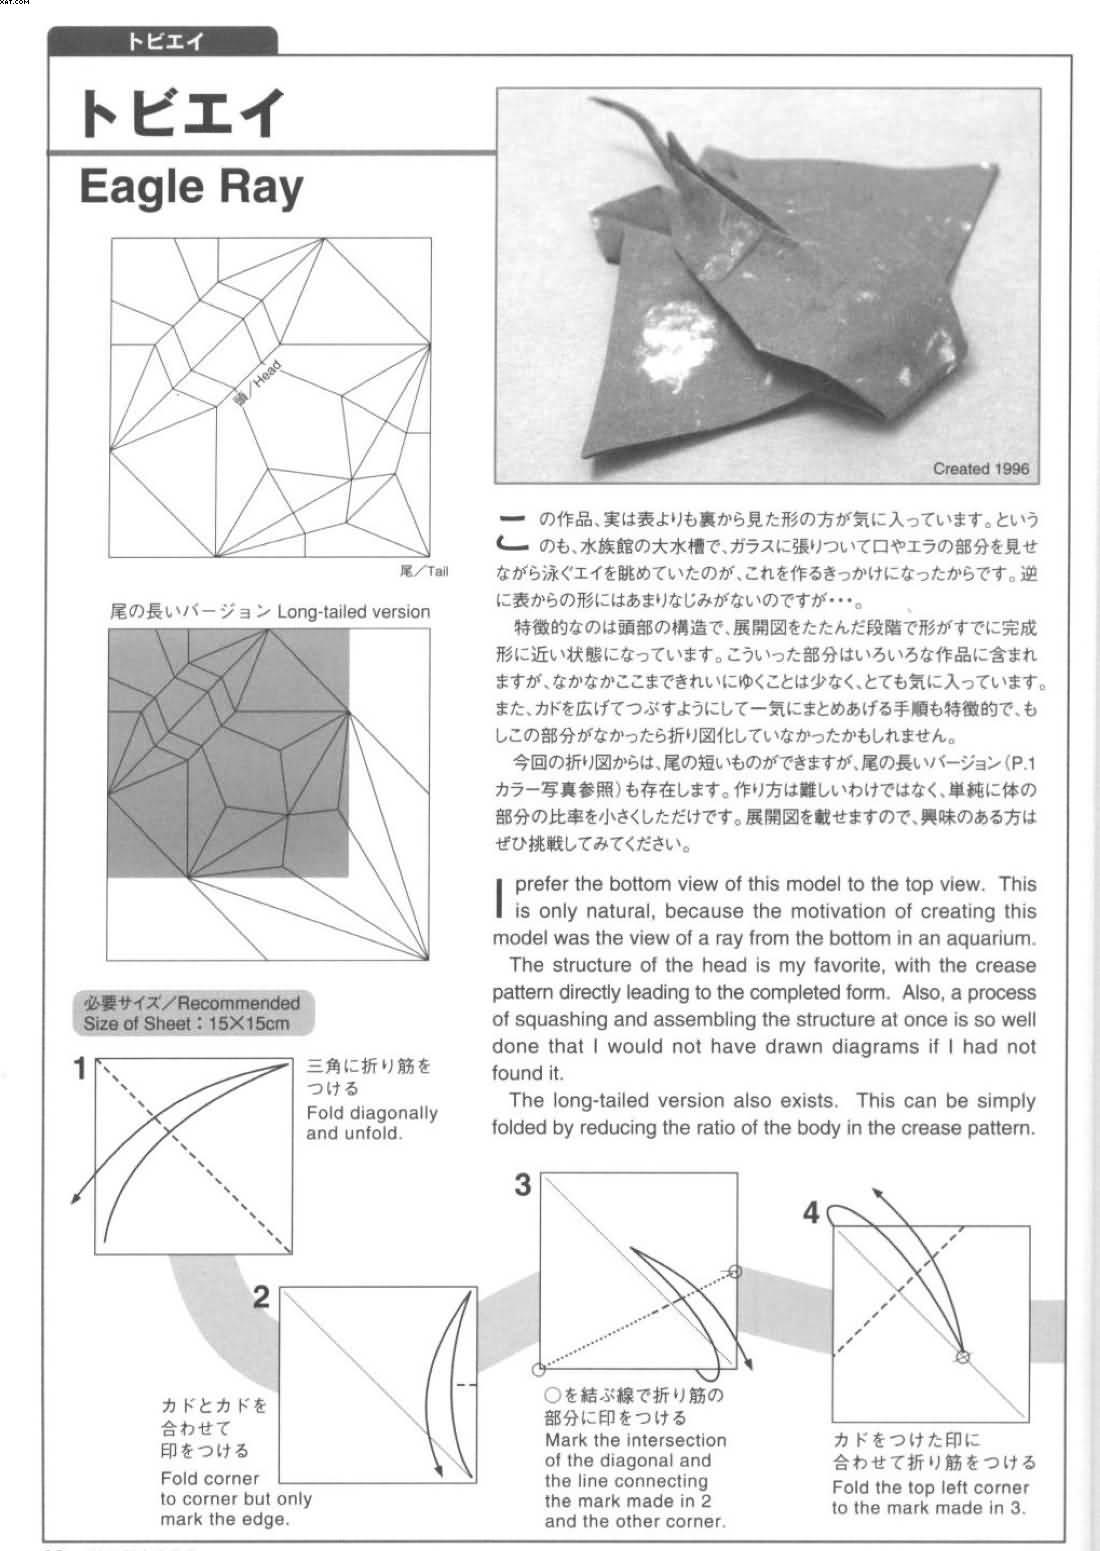 satoshi kamiya diagram lutron 3 66 43 diagrams origami lion instructions